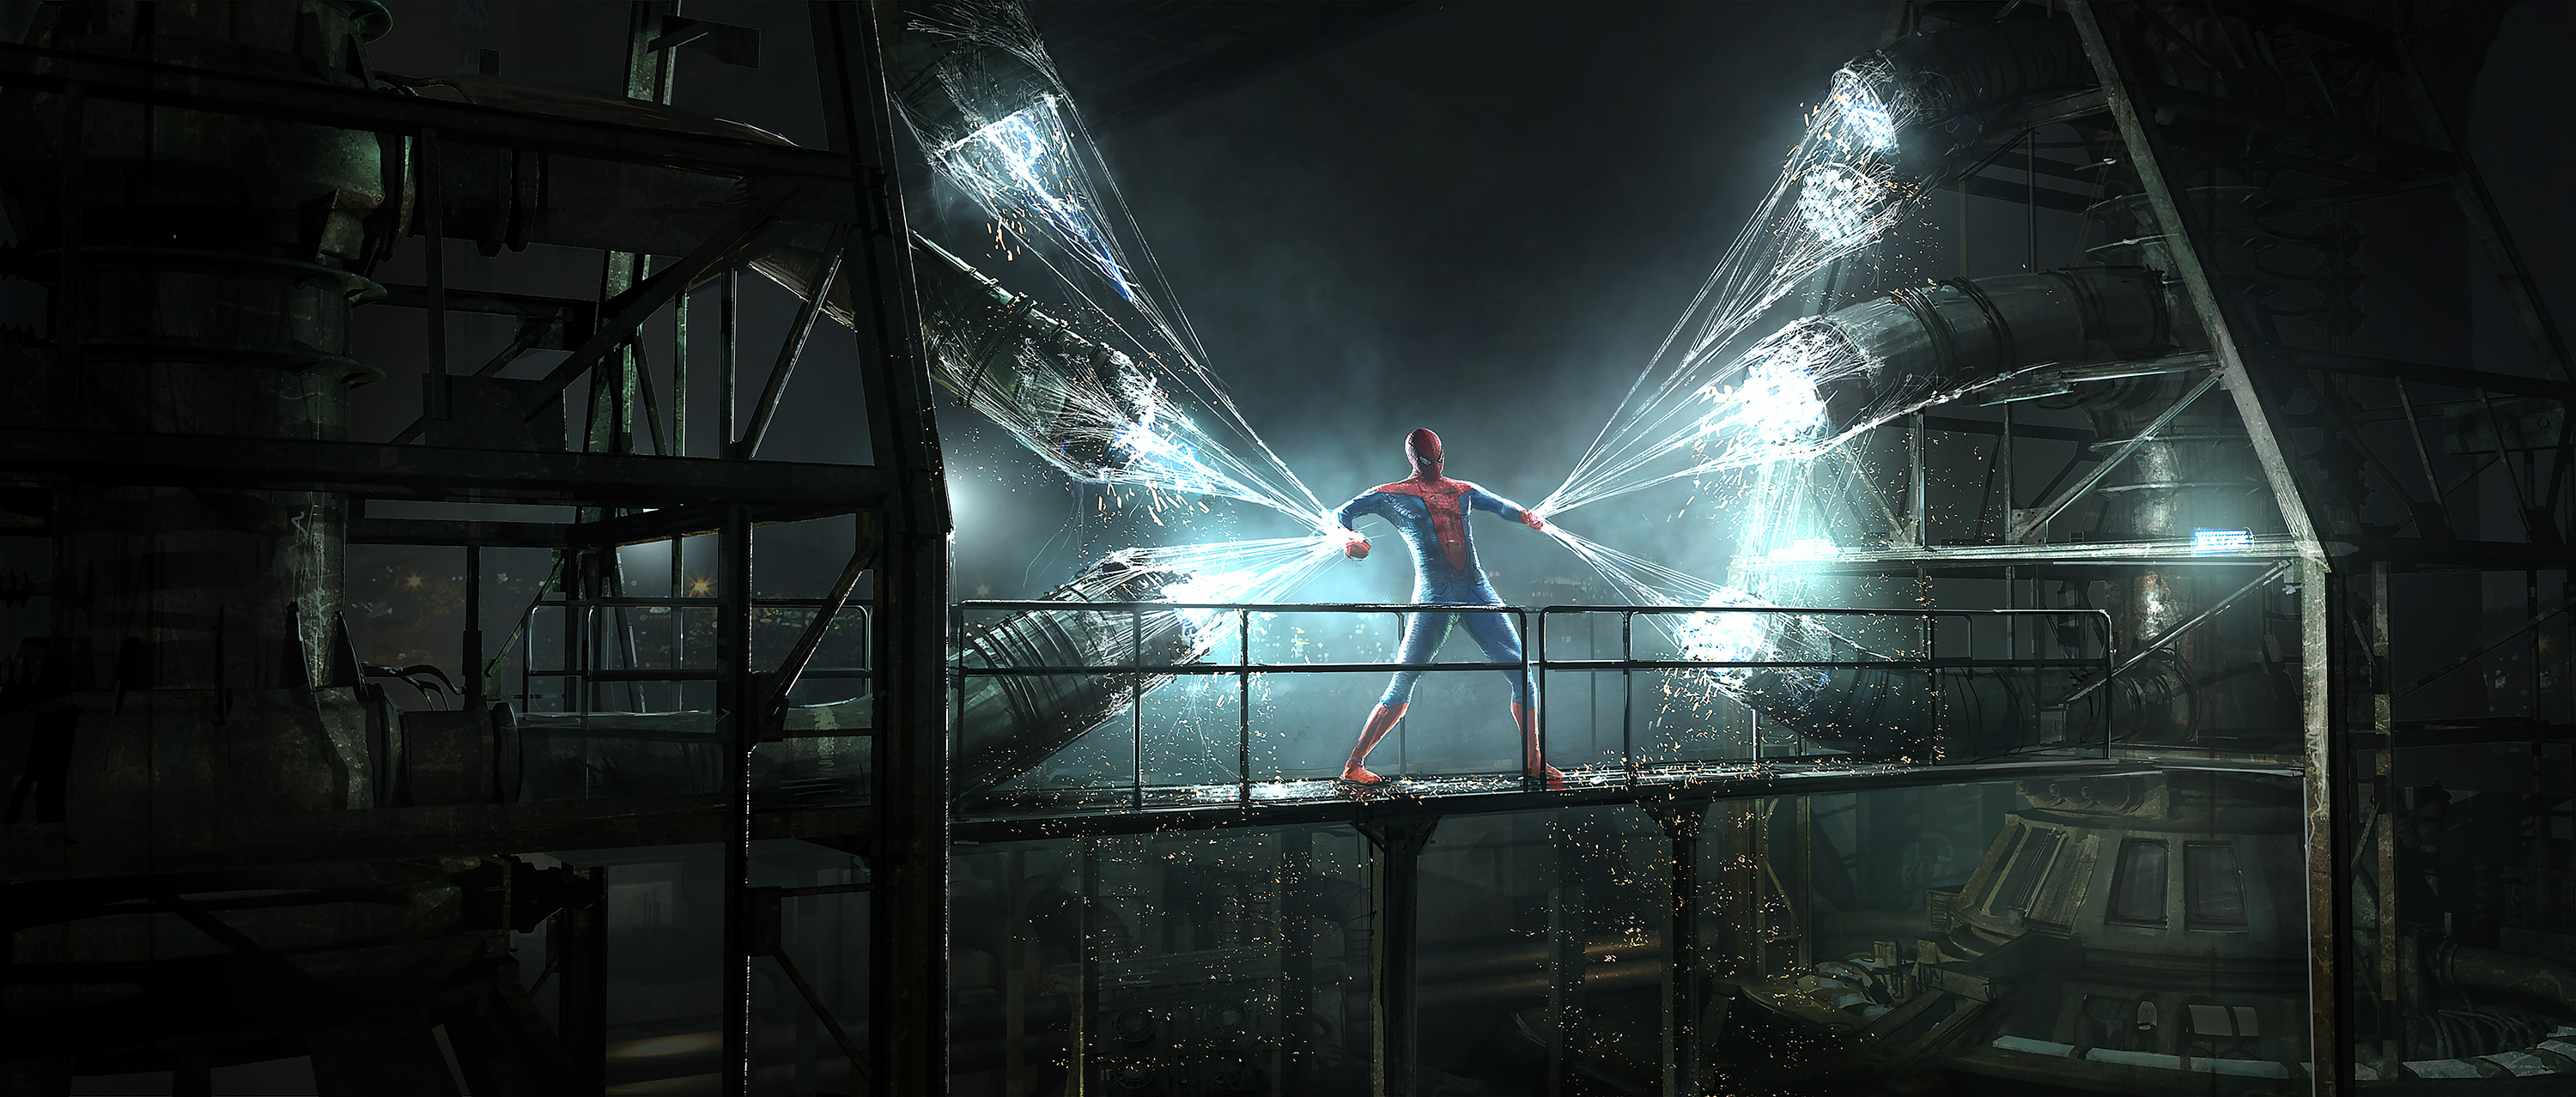 Cine] Concept arts varios de The Amazing Spider-Man 2, por Emmanuel ...